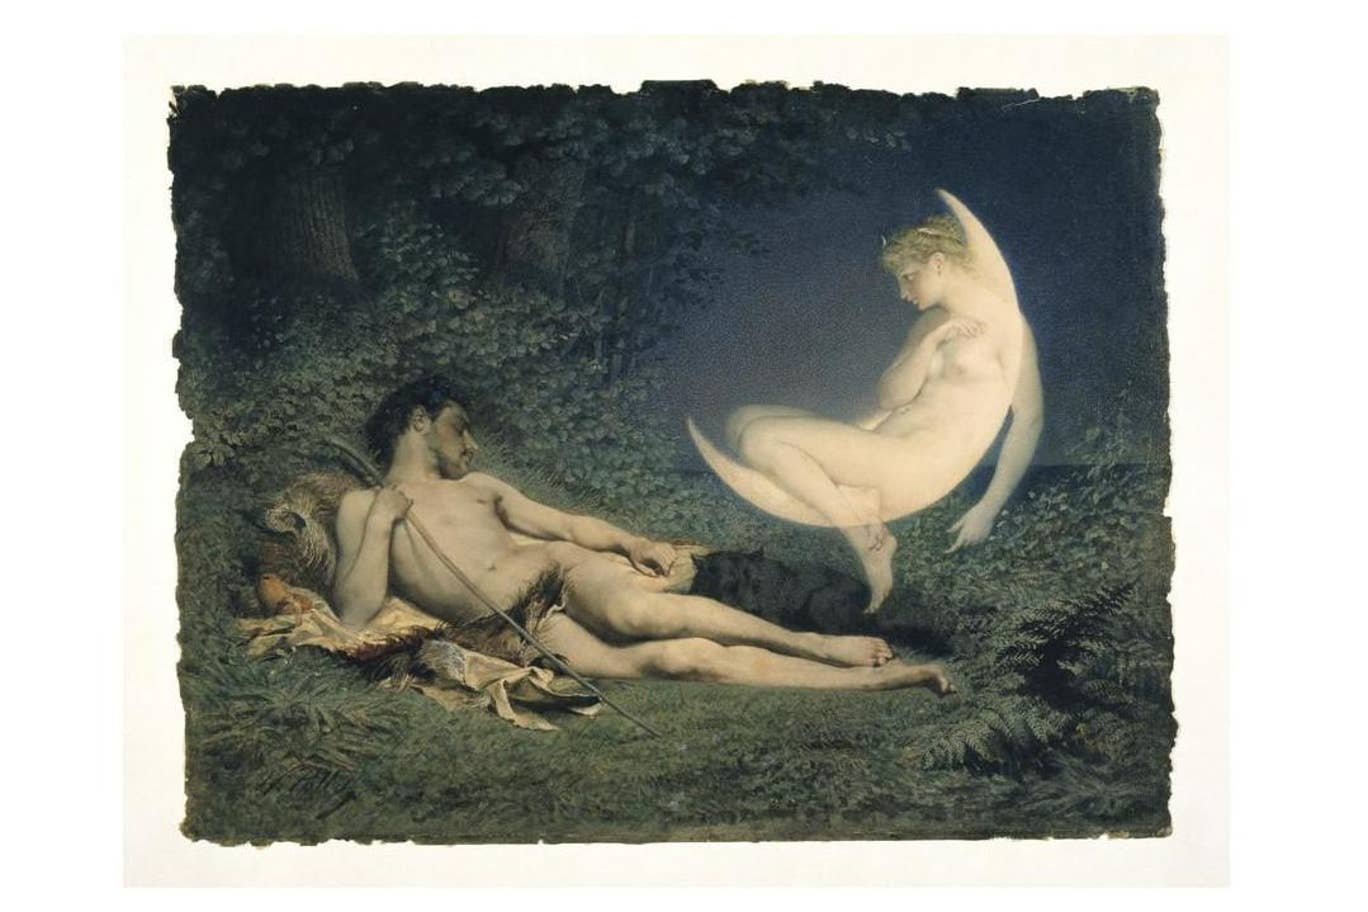 Victor-Florence Pollet, Endymion and Selene, 19th century, image via The Victoria and Albert Museum